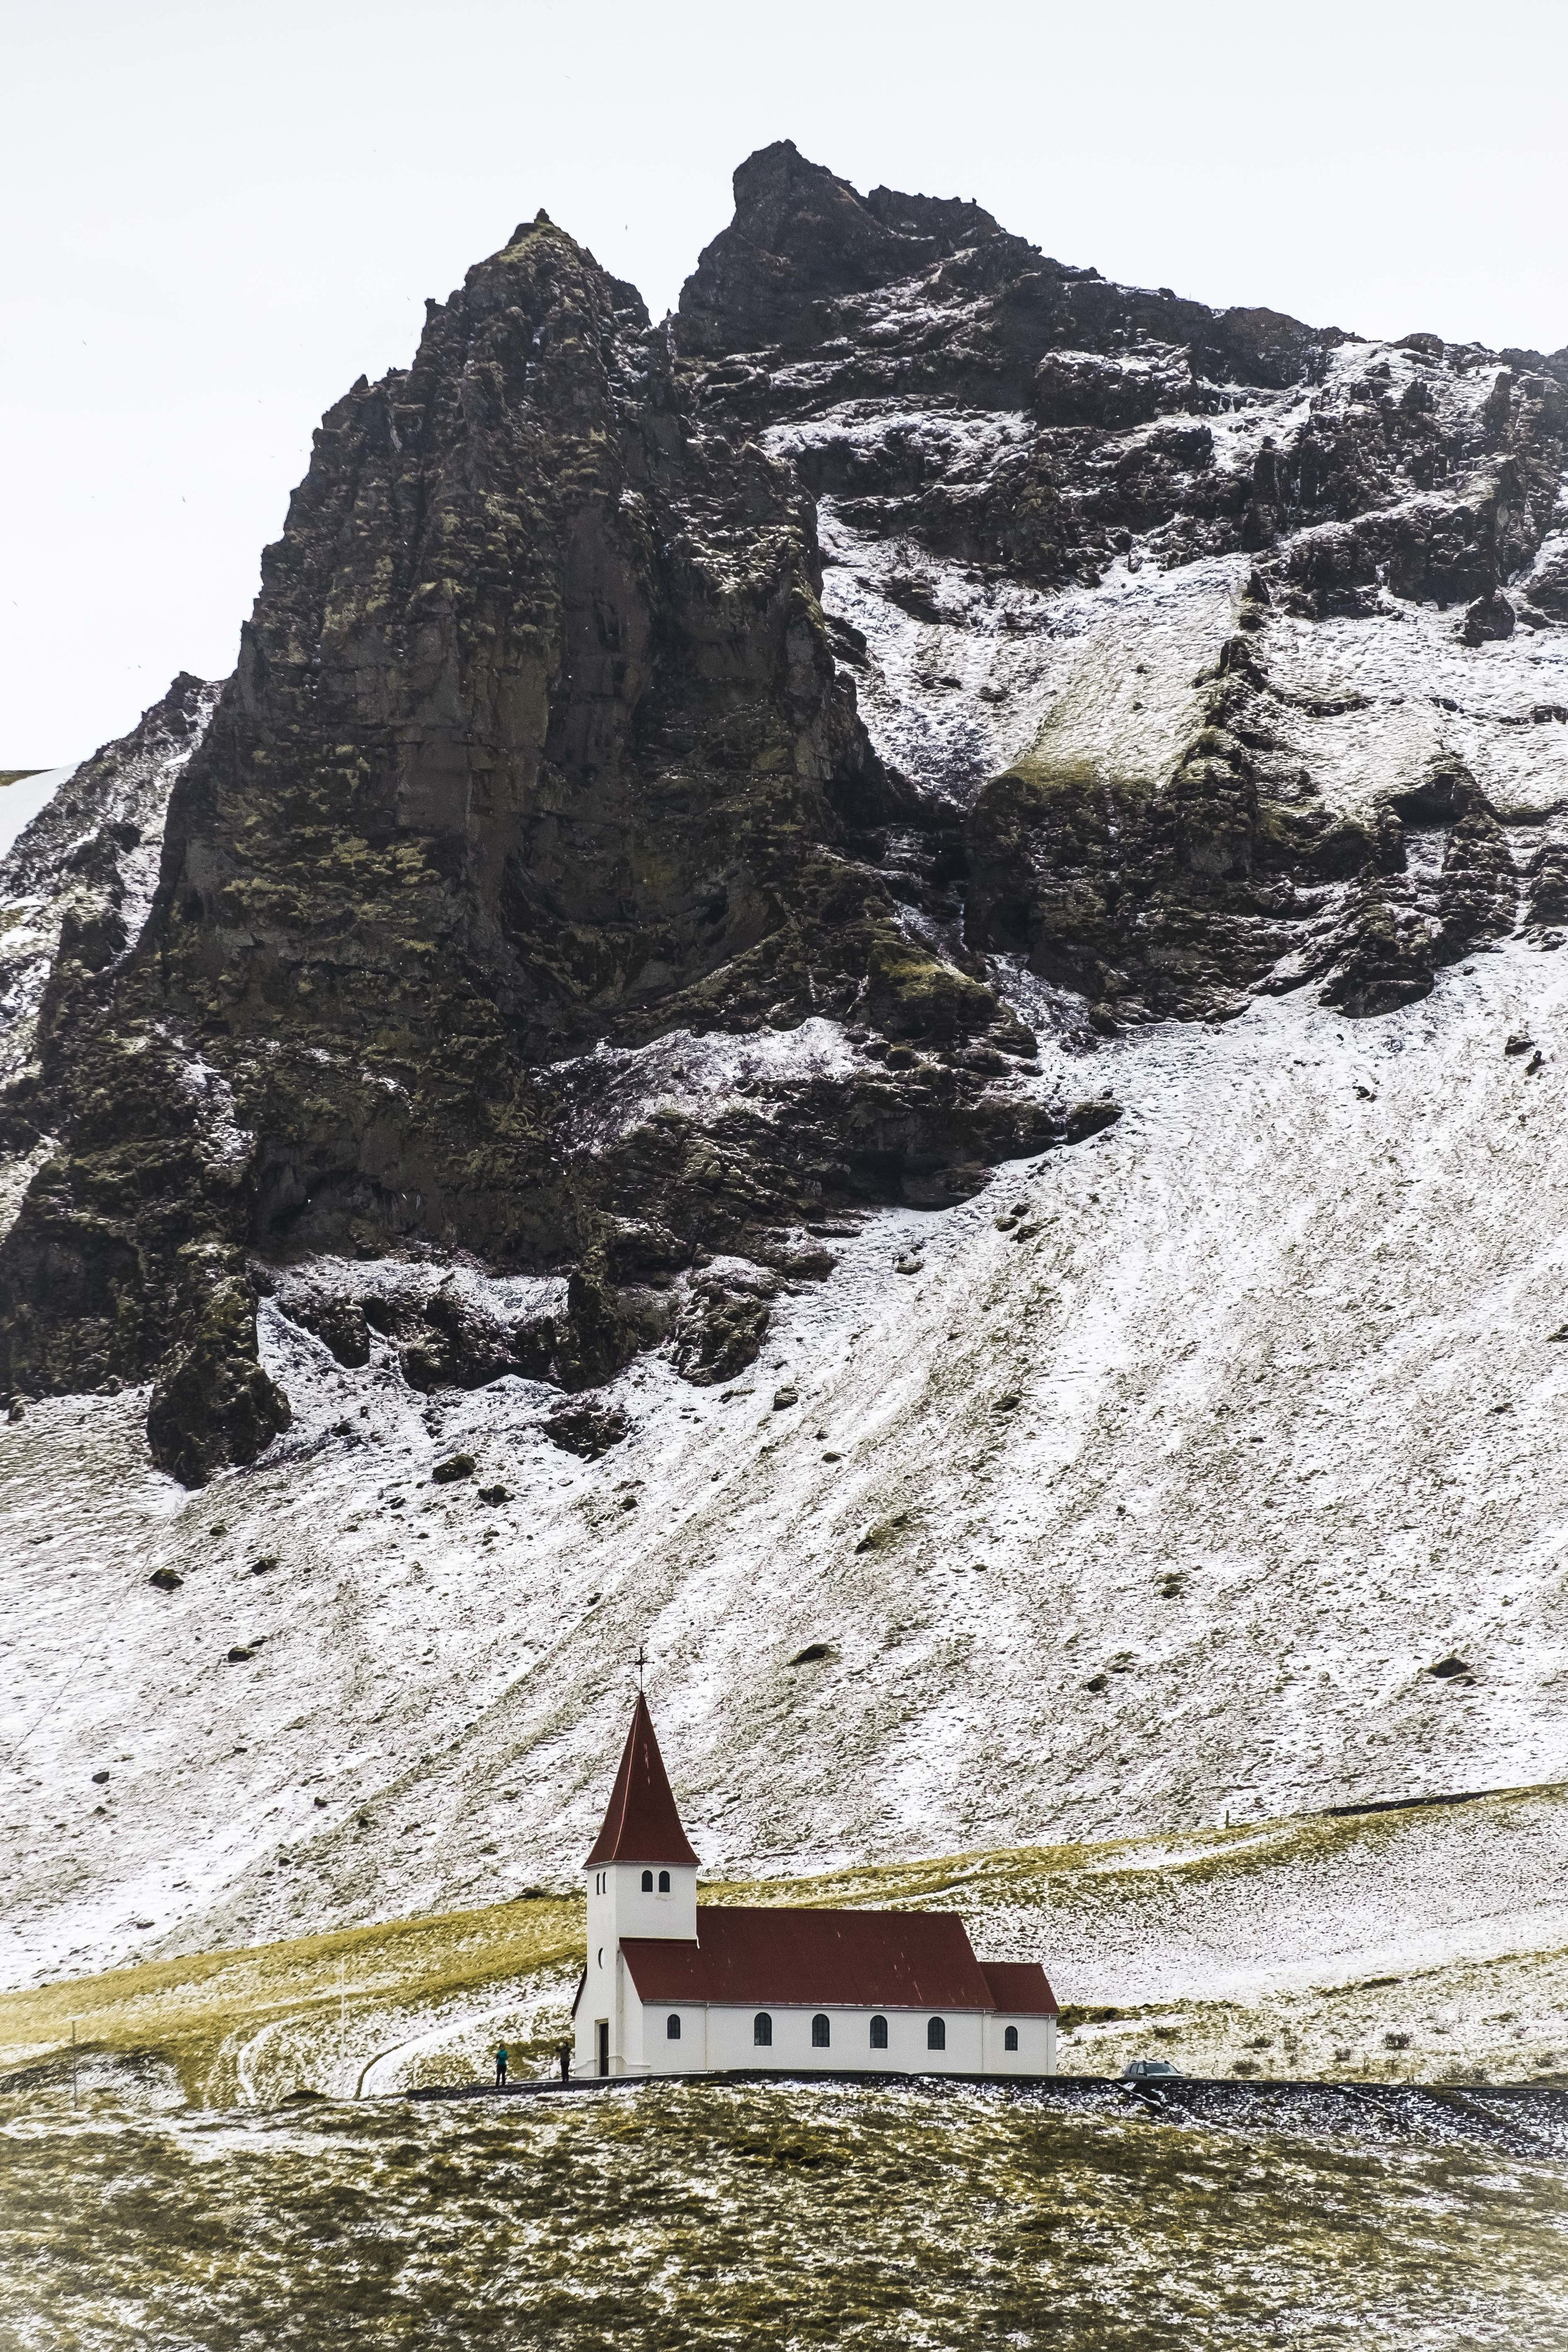 I'm not a religious man, but the churches in Iceland were cute.